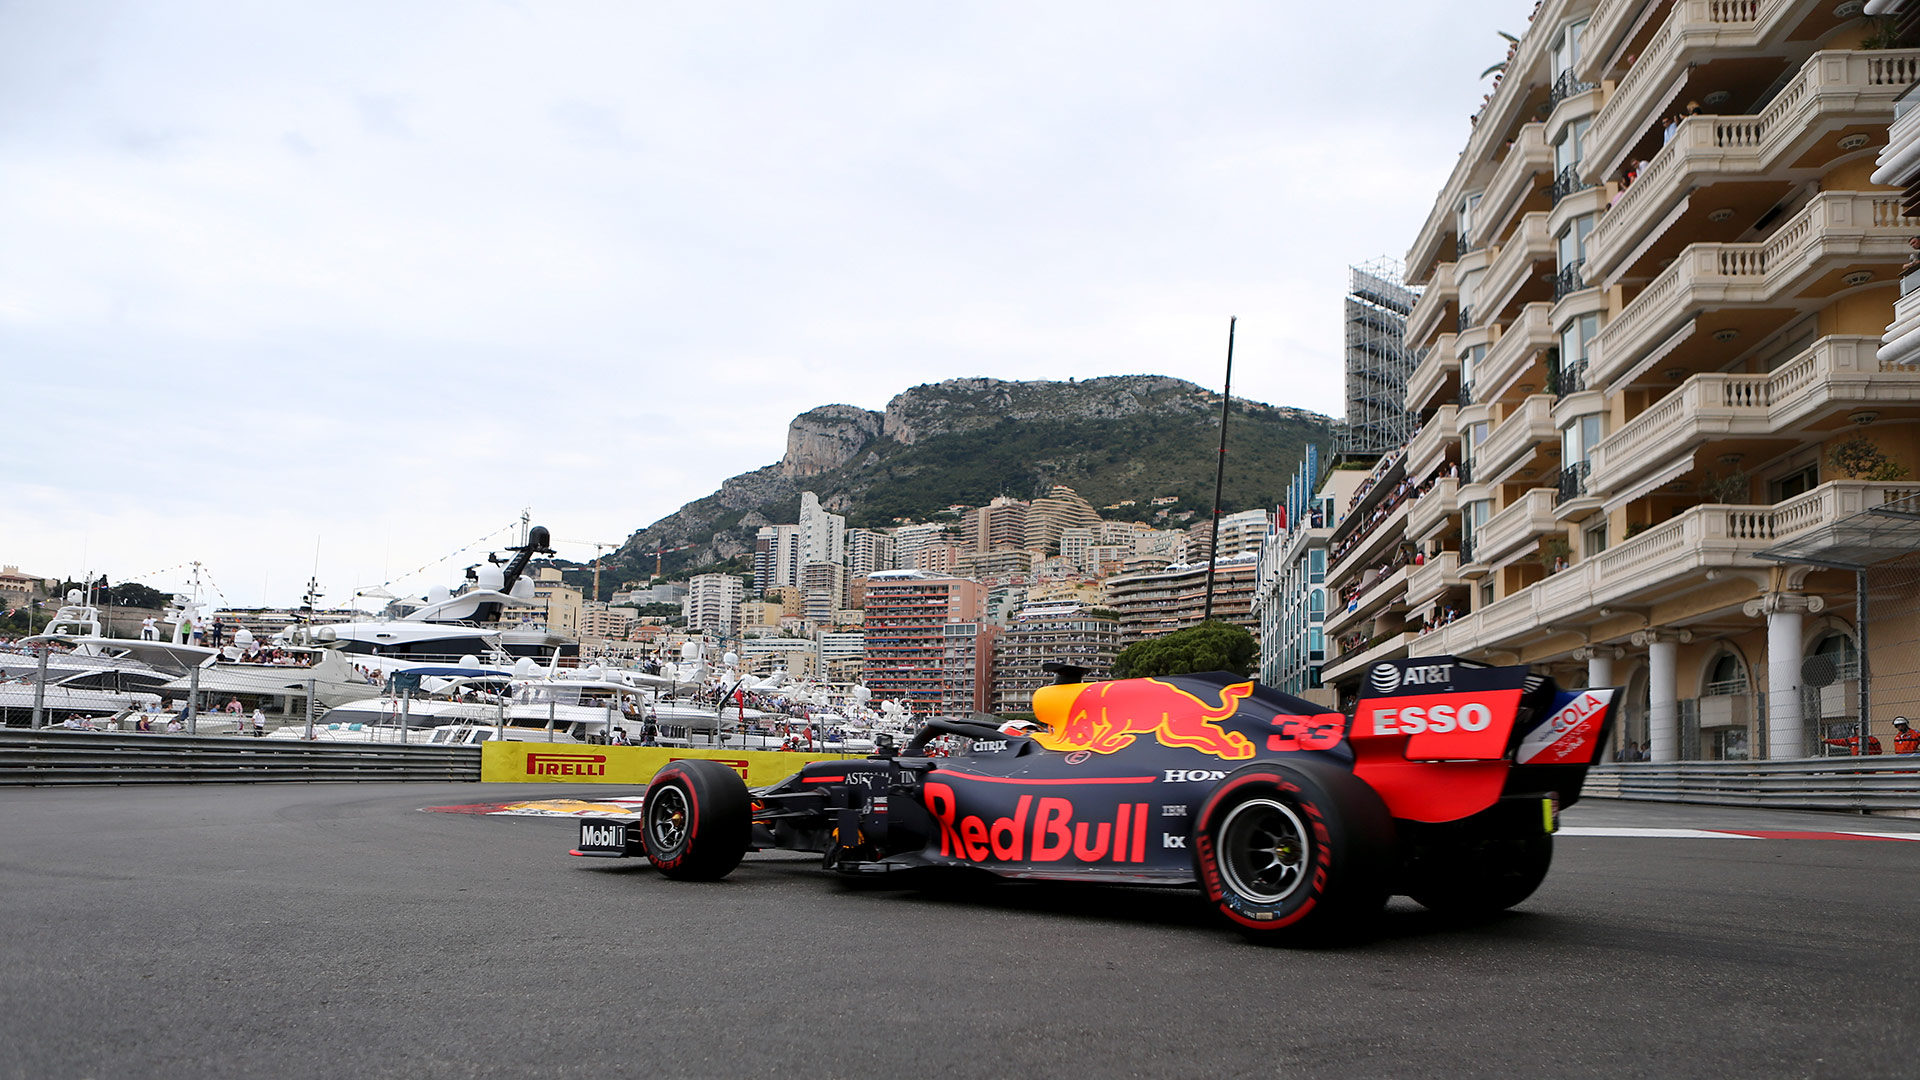 'We need to make sure we beat Mercedes in Monaco', says Red Bull boss Christian Horner   Formula 1®